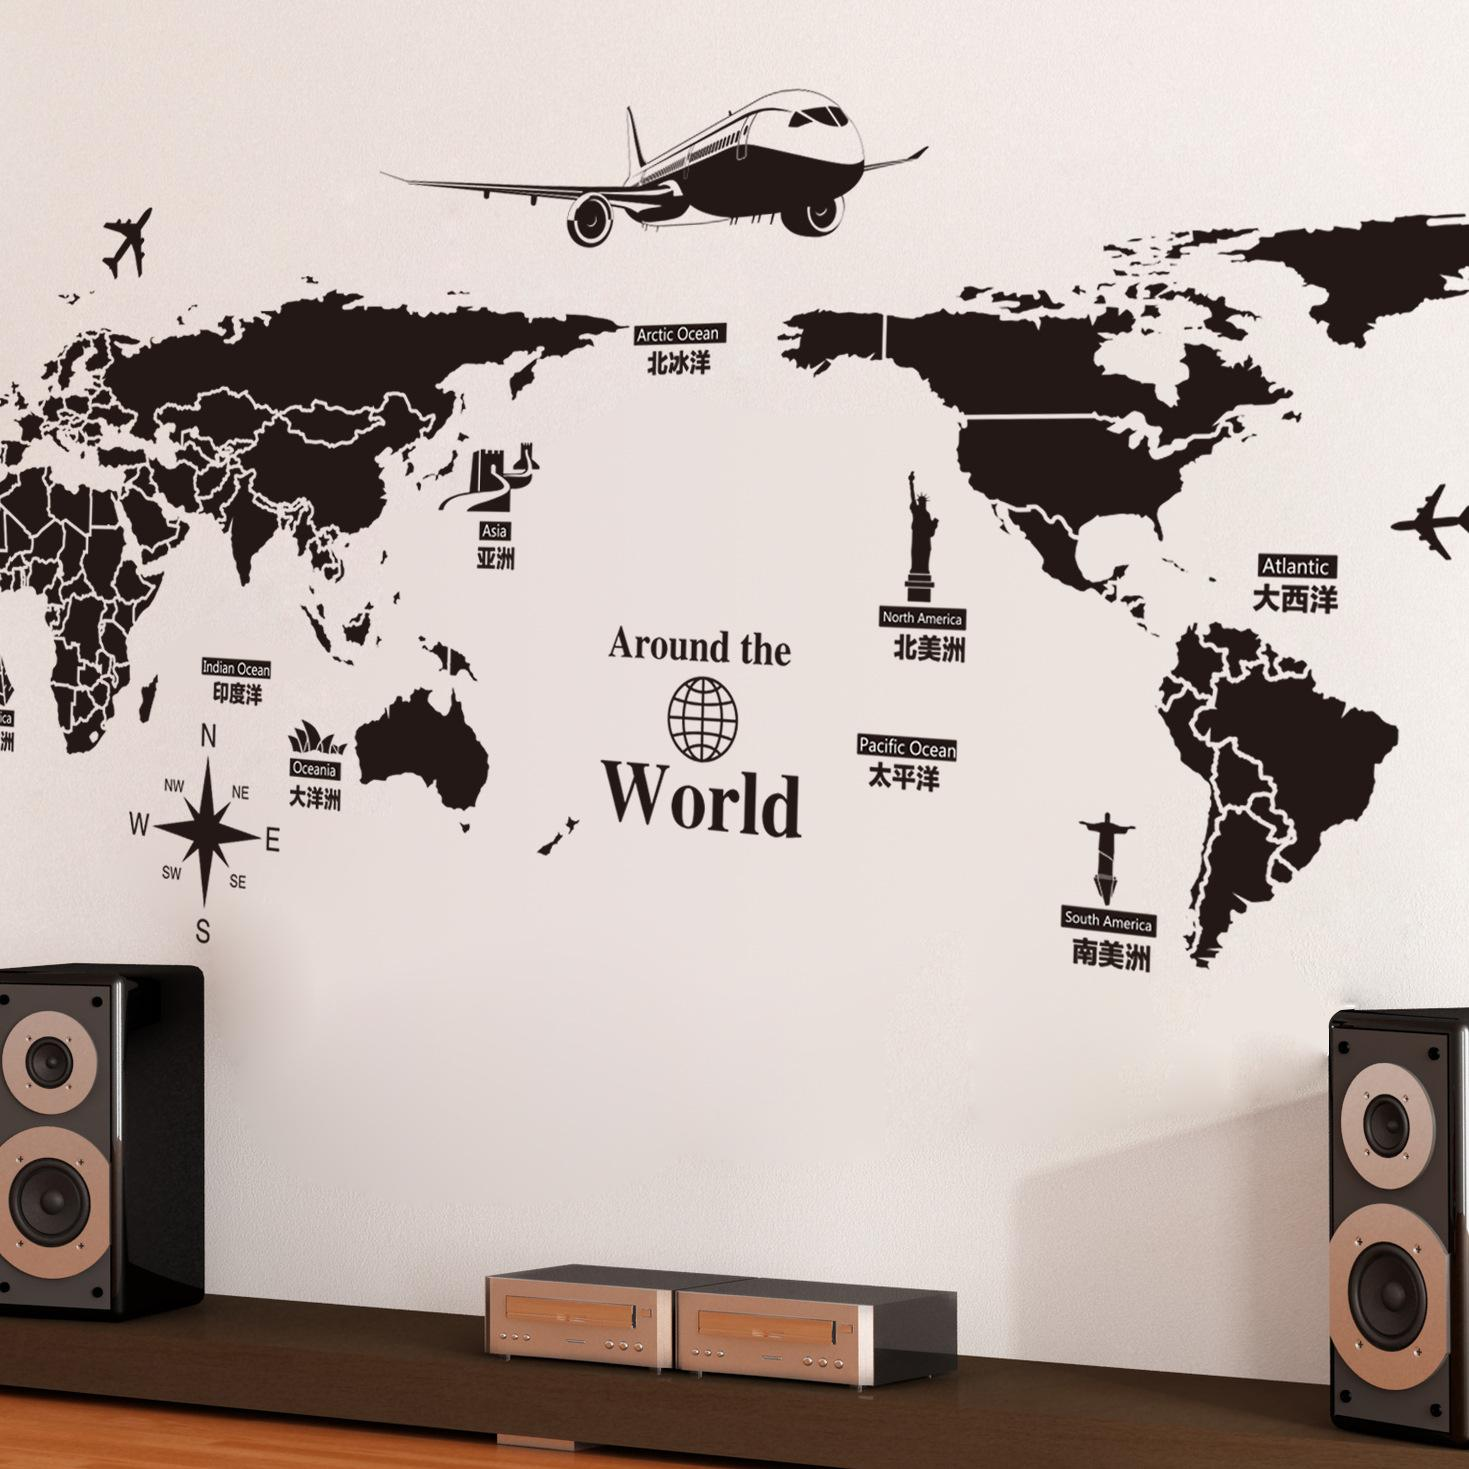 Wall sticker world map peenmedia removable wall stickers creative world tour world map monochromatic simple modern 6090 word wall gumiabroncs Choice Image